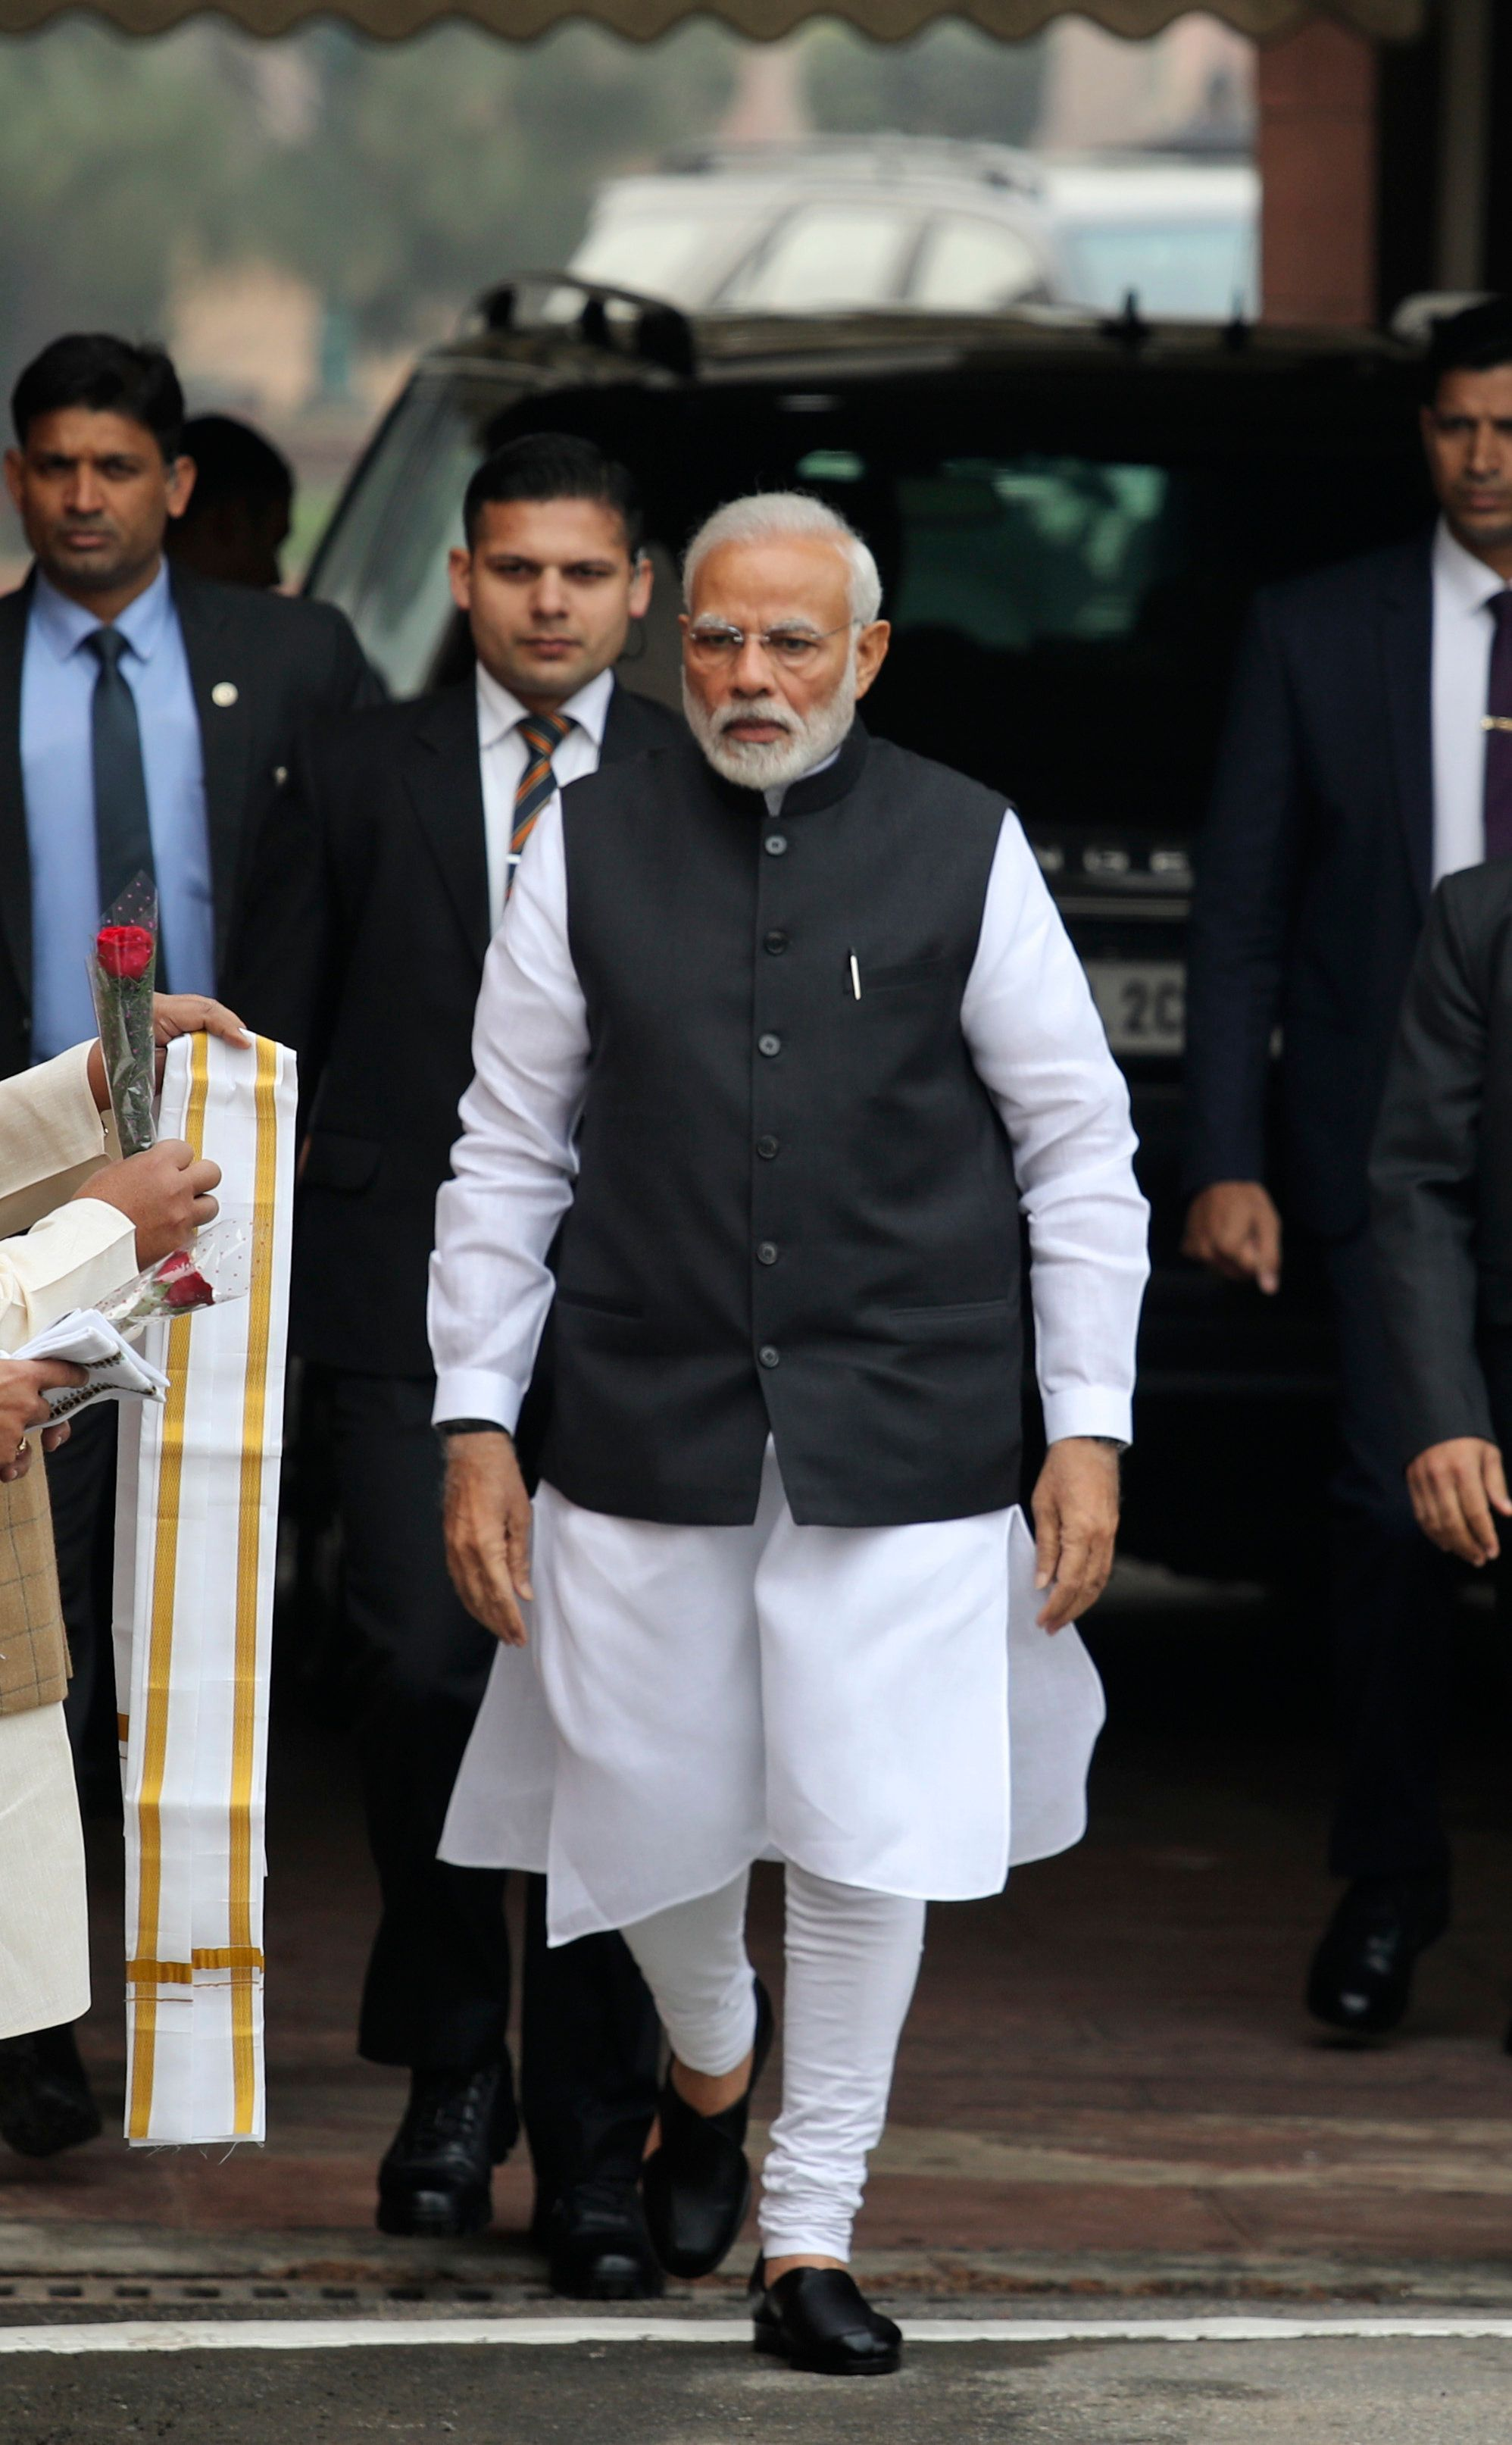 Let Judicial Process Be Over, Says PM Modi On Ram Temple